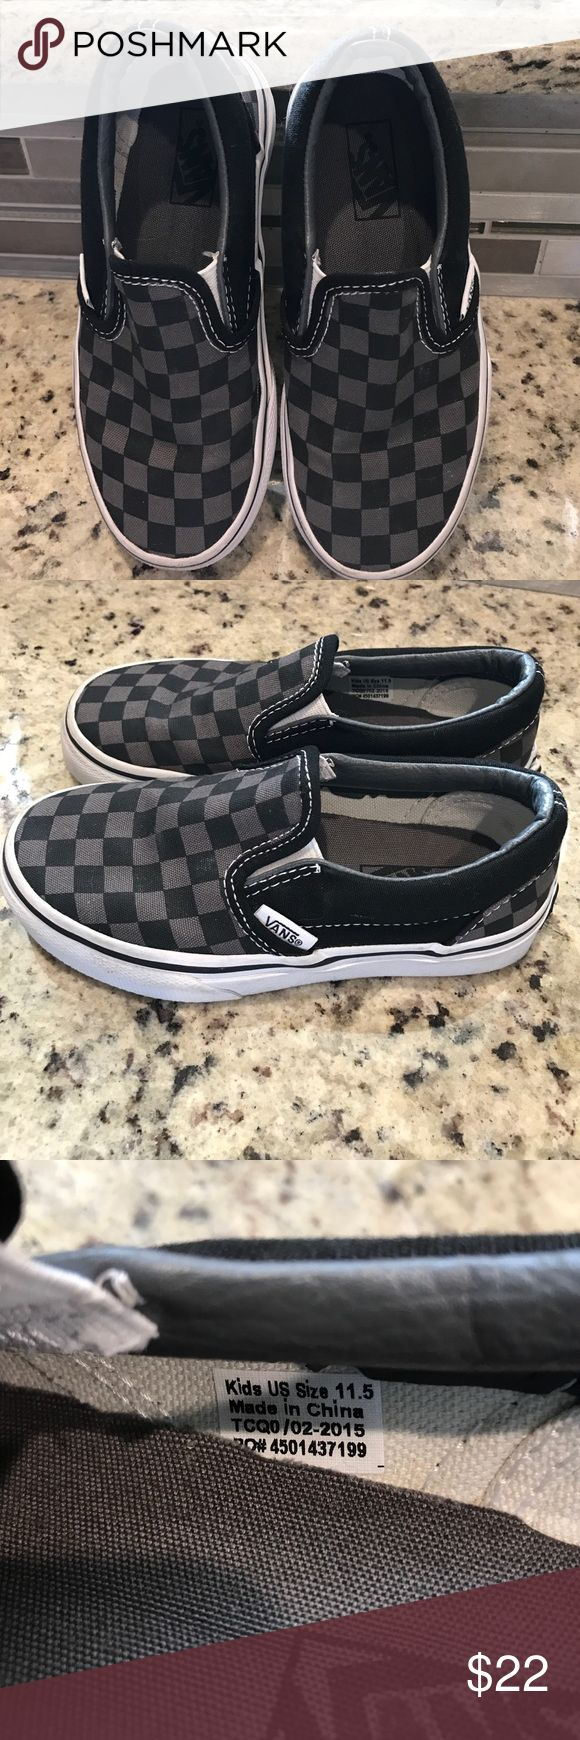 😎Child's Vans checkerboard slip on shoes. NWOT Vans shoes. Children's size 11.5. Gray & black checks, black and white rubber soles. Never worn. No box so I couldn't return them. Smoke free home. Vans Shoes Sneakers